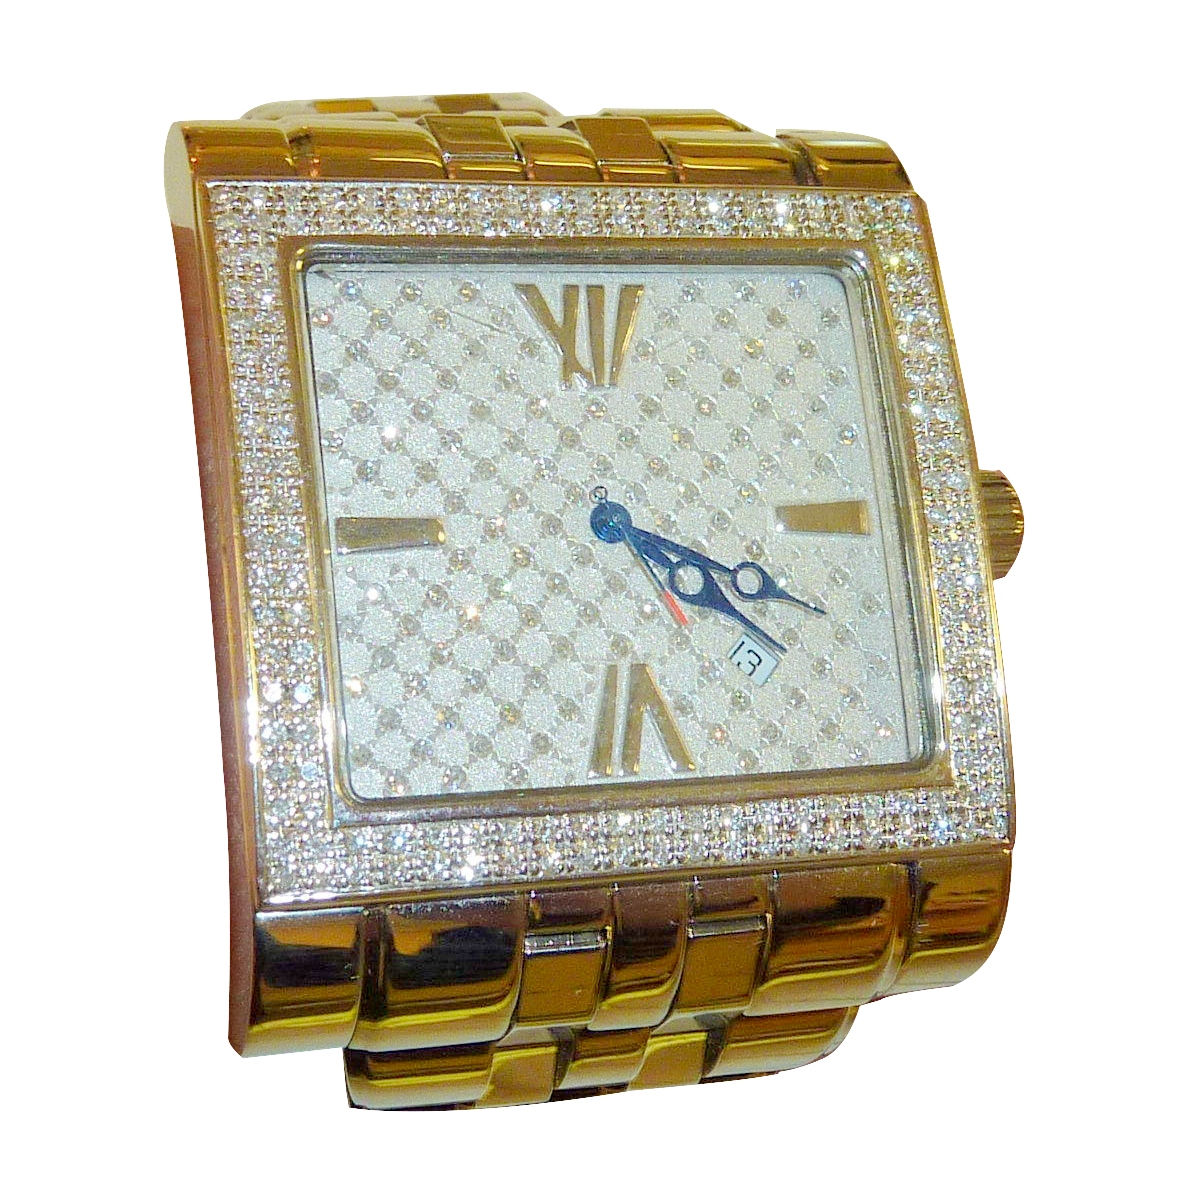 Ritmo Mundo Palazzo full diamond face and bezel unisex dress watch